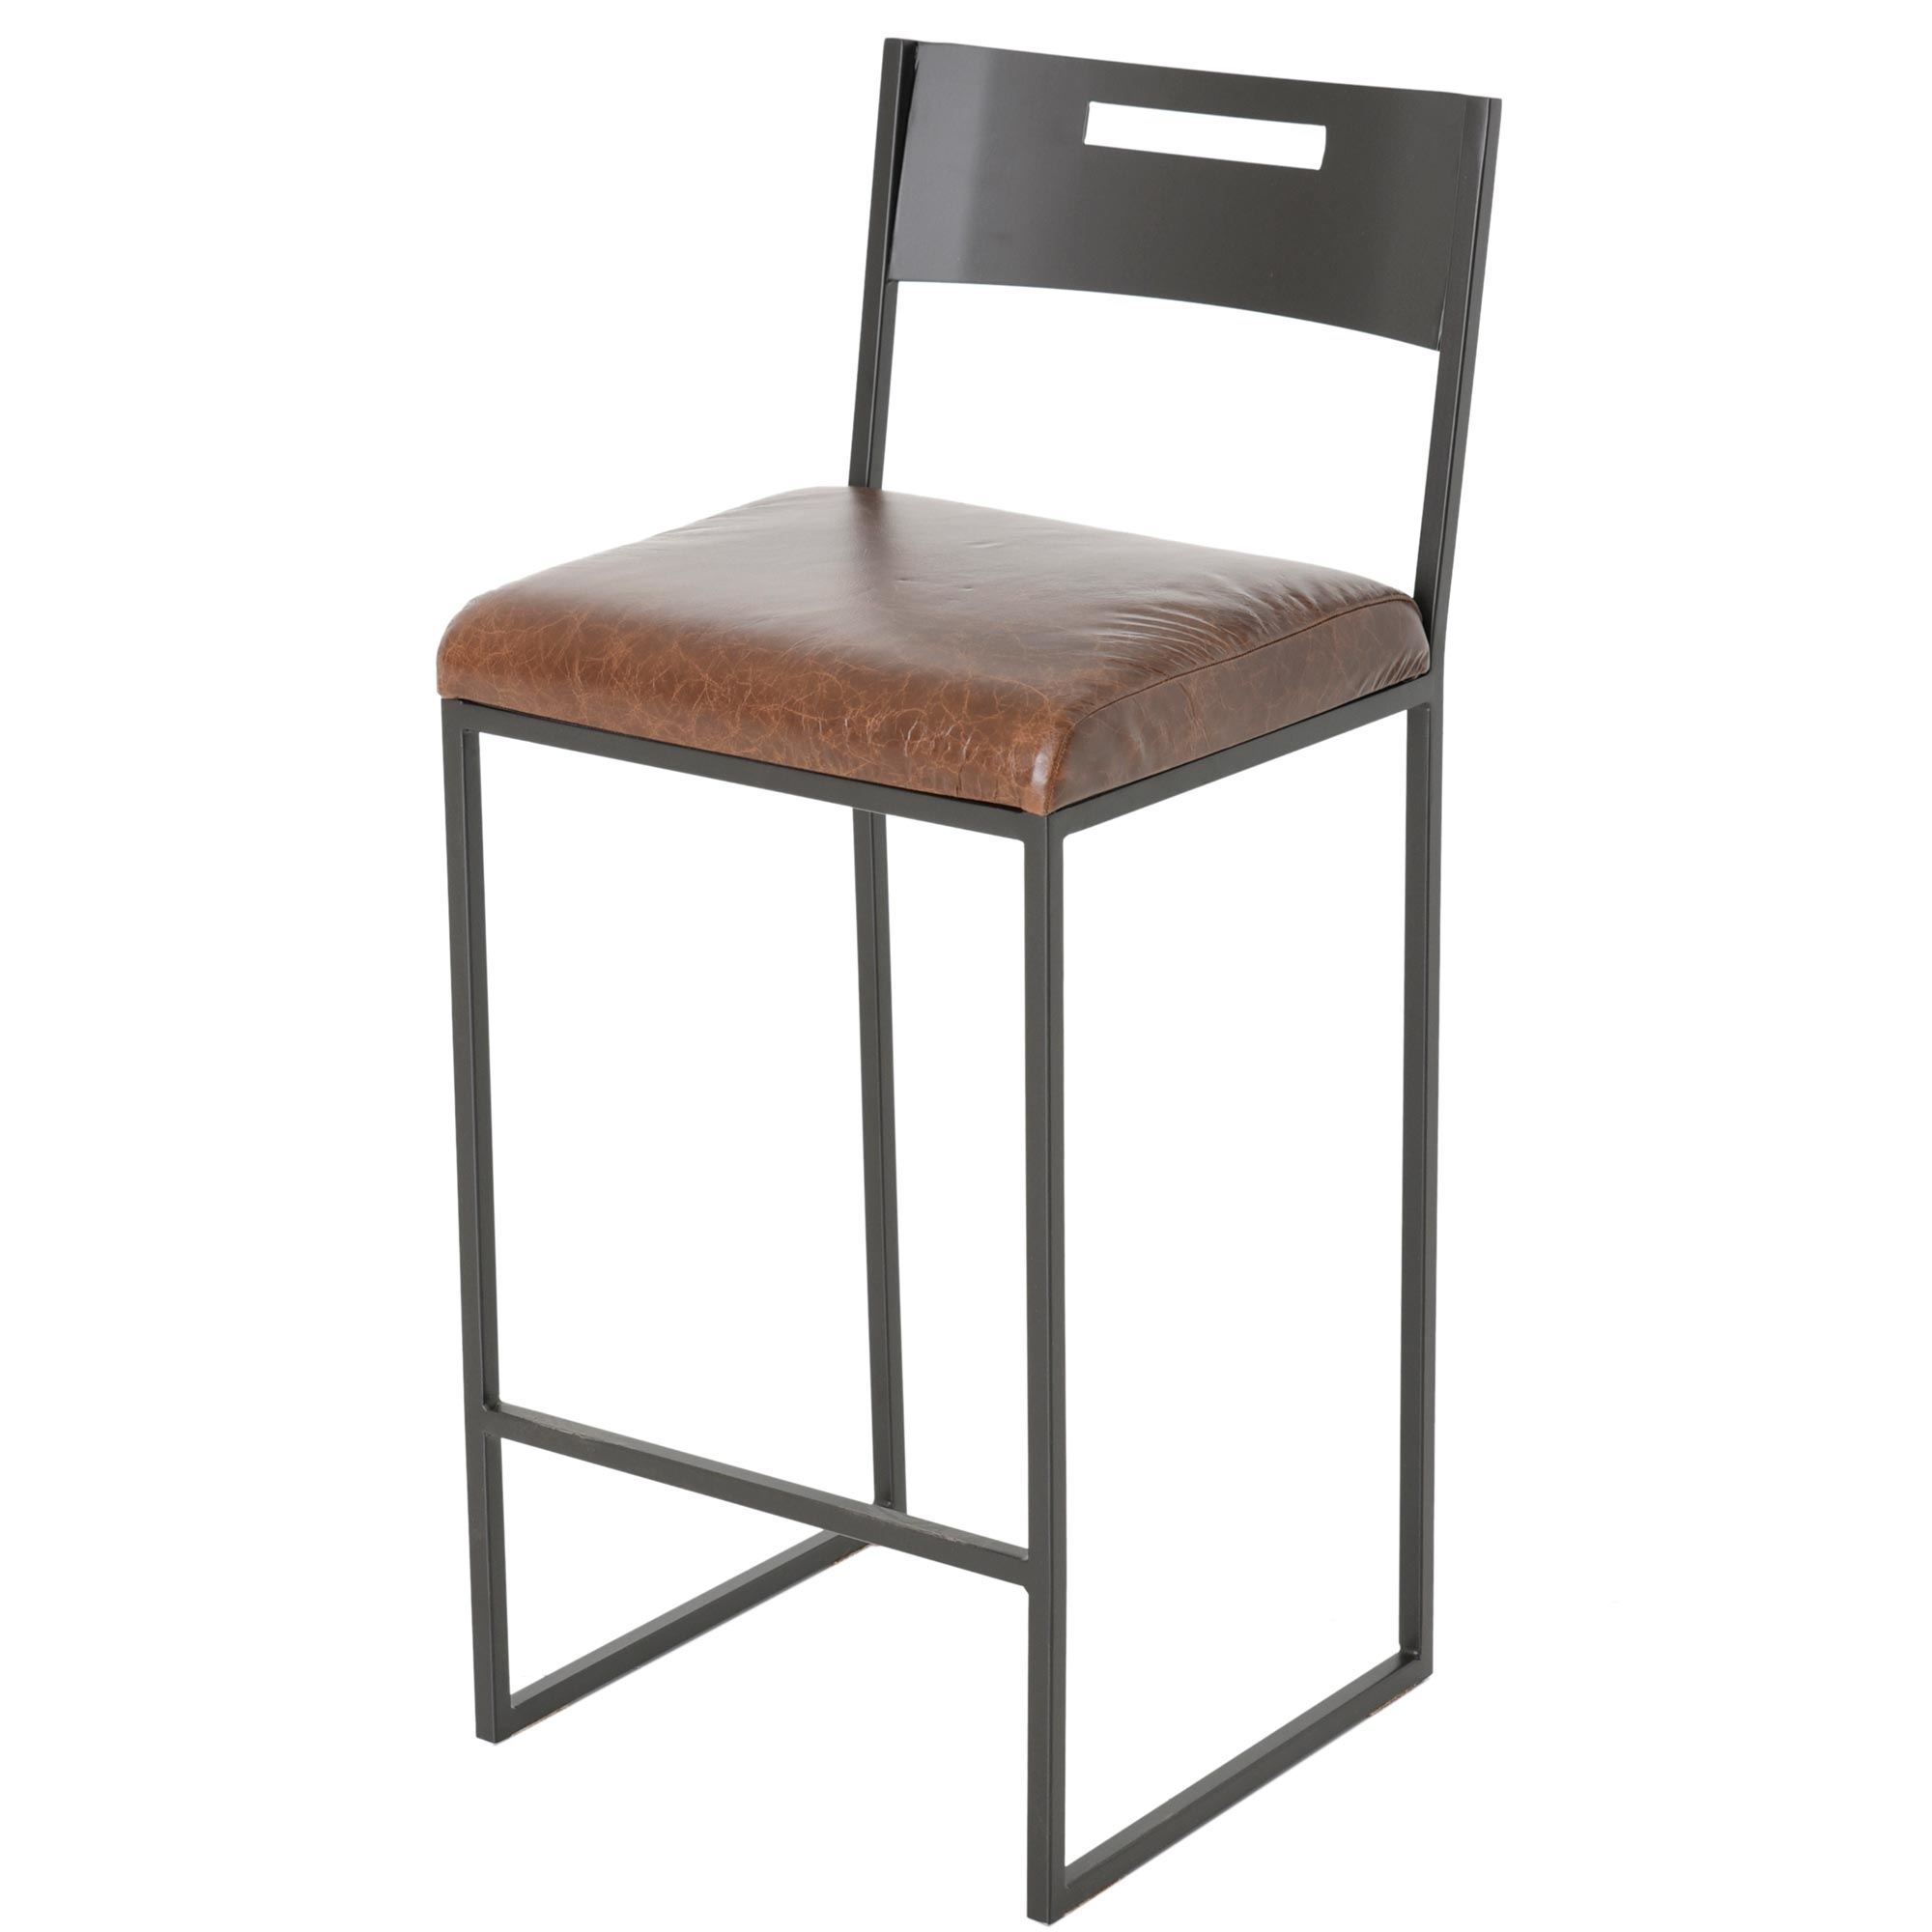 Pictured here is the astor counter stool with a 26 inch Counter seating